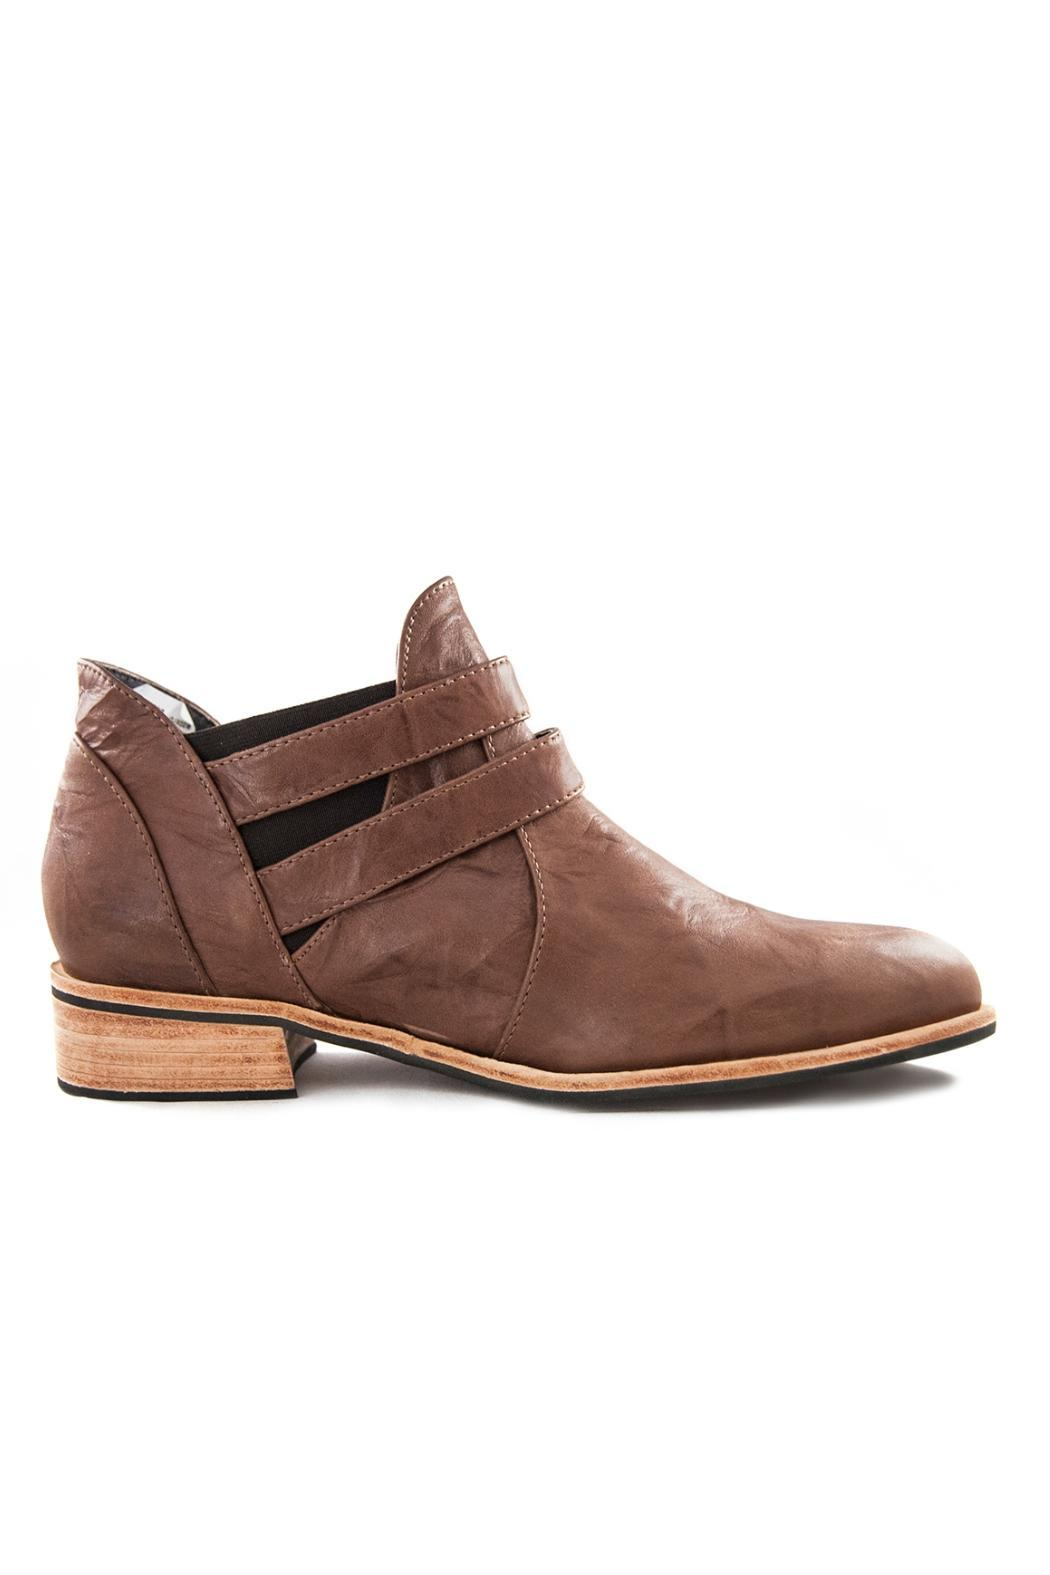 Fortress of Inca Handmade Leather Shootie - Front Full Image